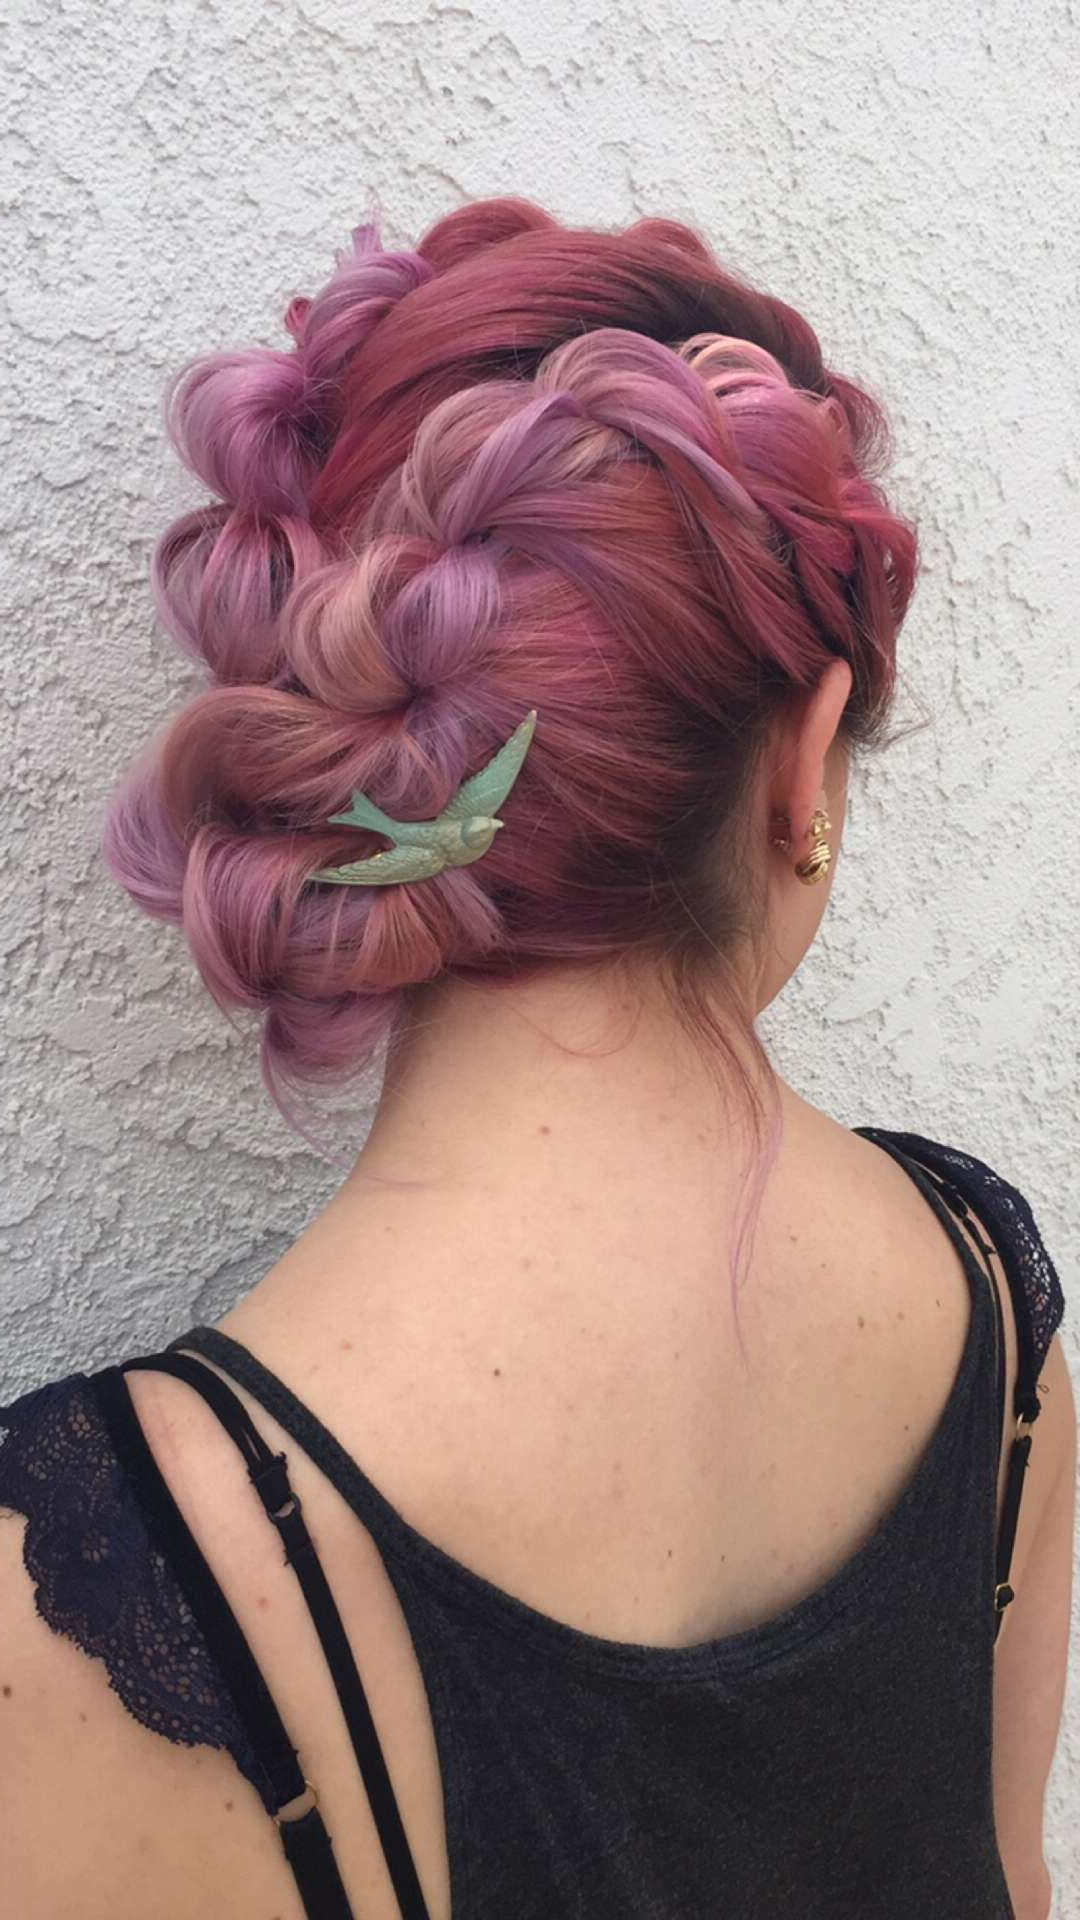 I See Your True With Famous Pastel Colored Updo Hairstyles With Rope Twist (Gallery 1 of 20)